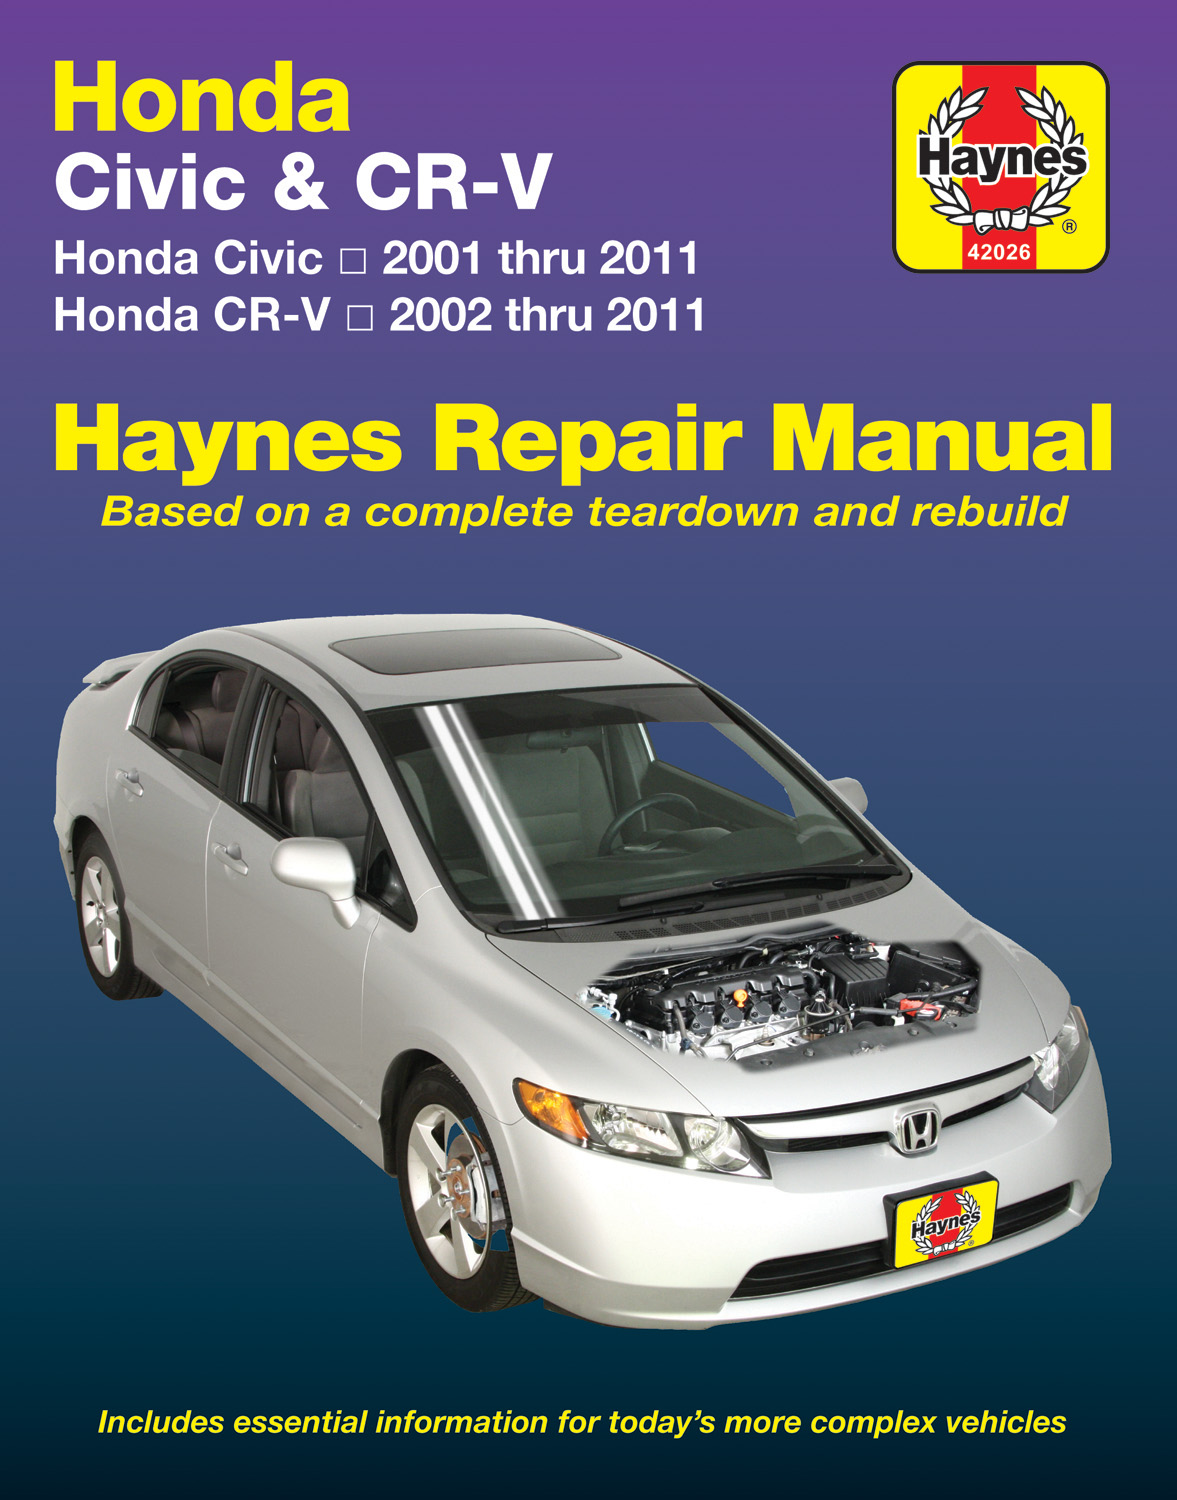 Civic Haynes Manuals Wiring Diagram 2005 Honda Hybrid Enlarge